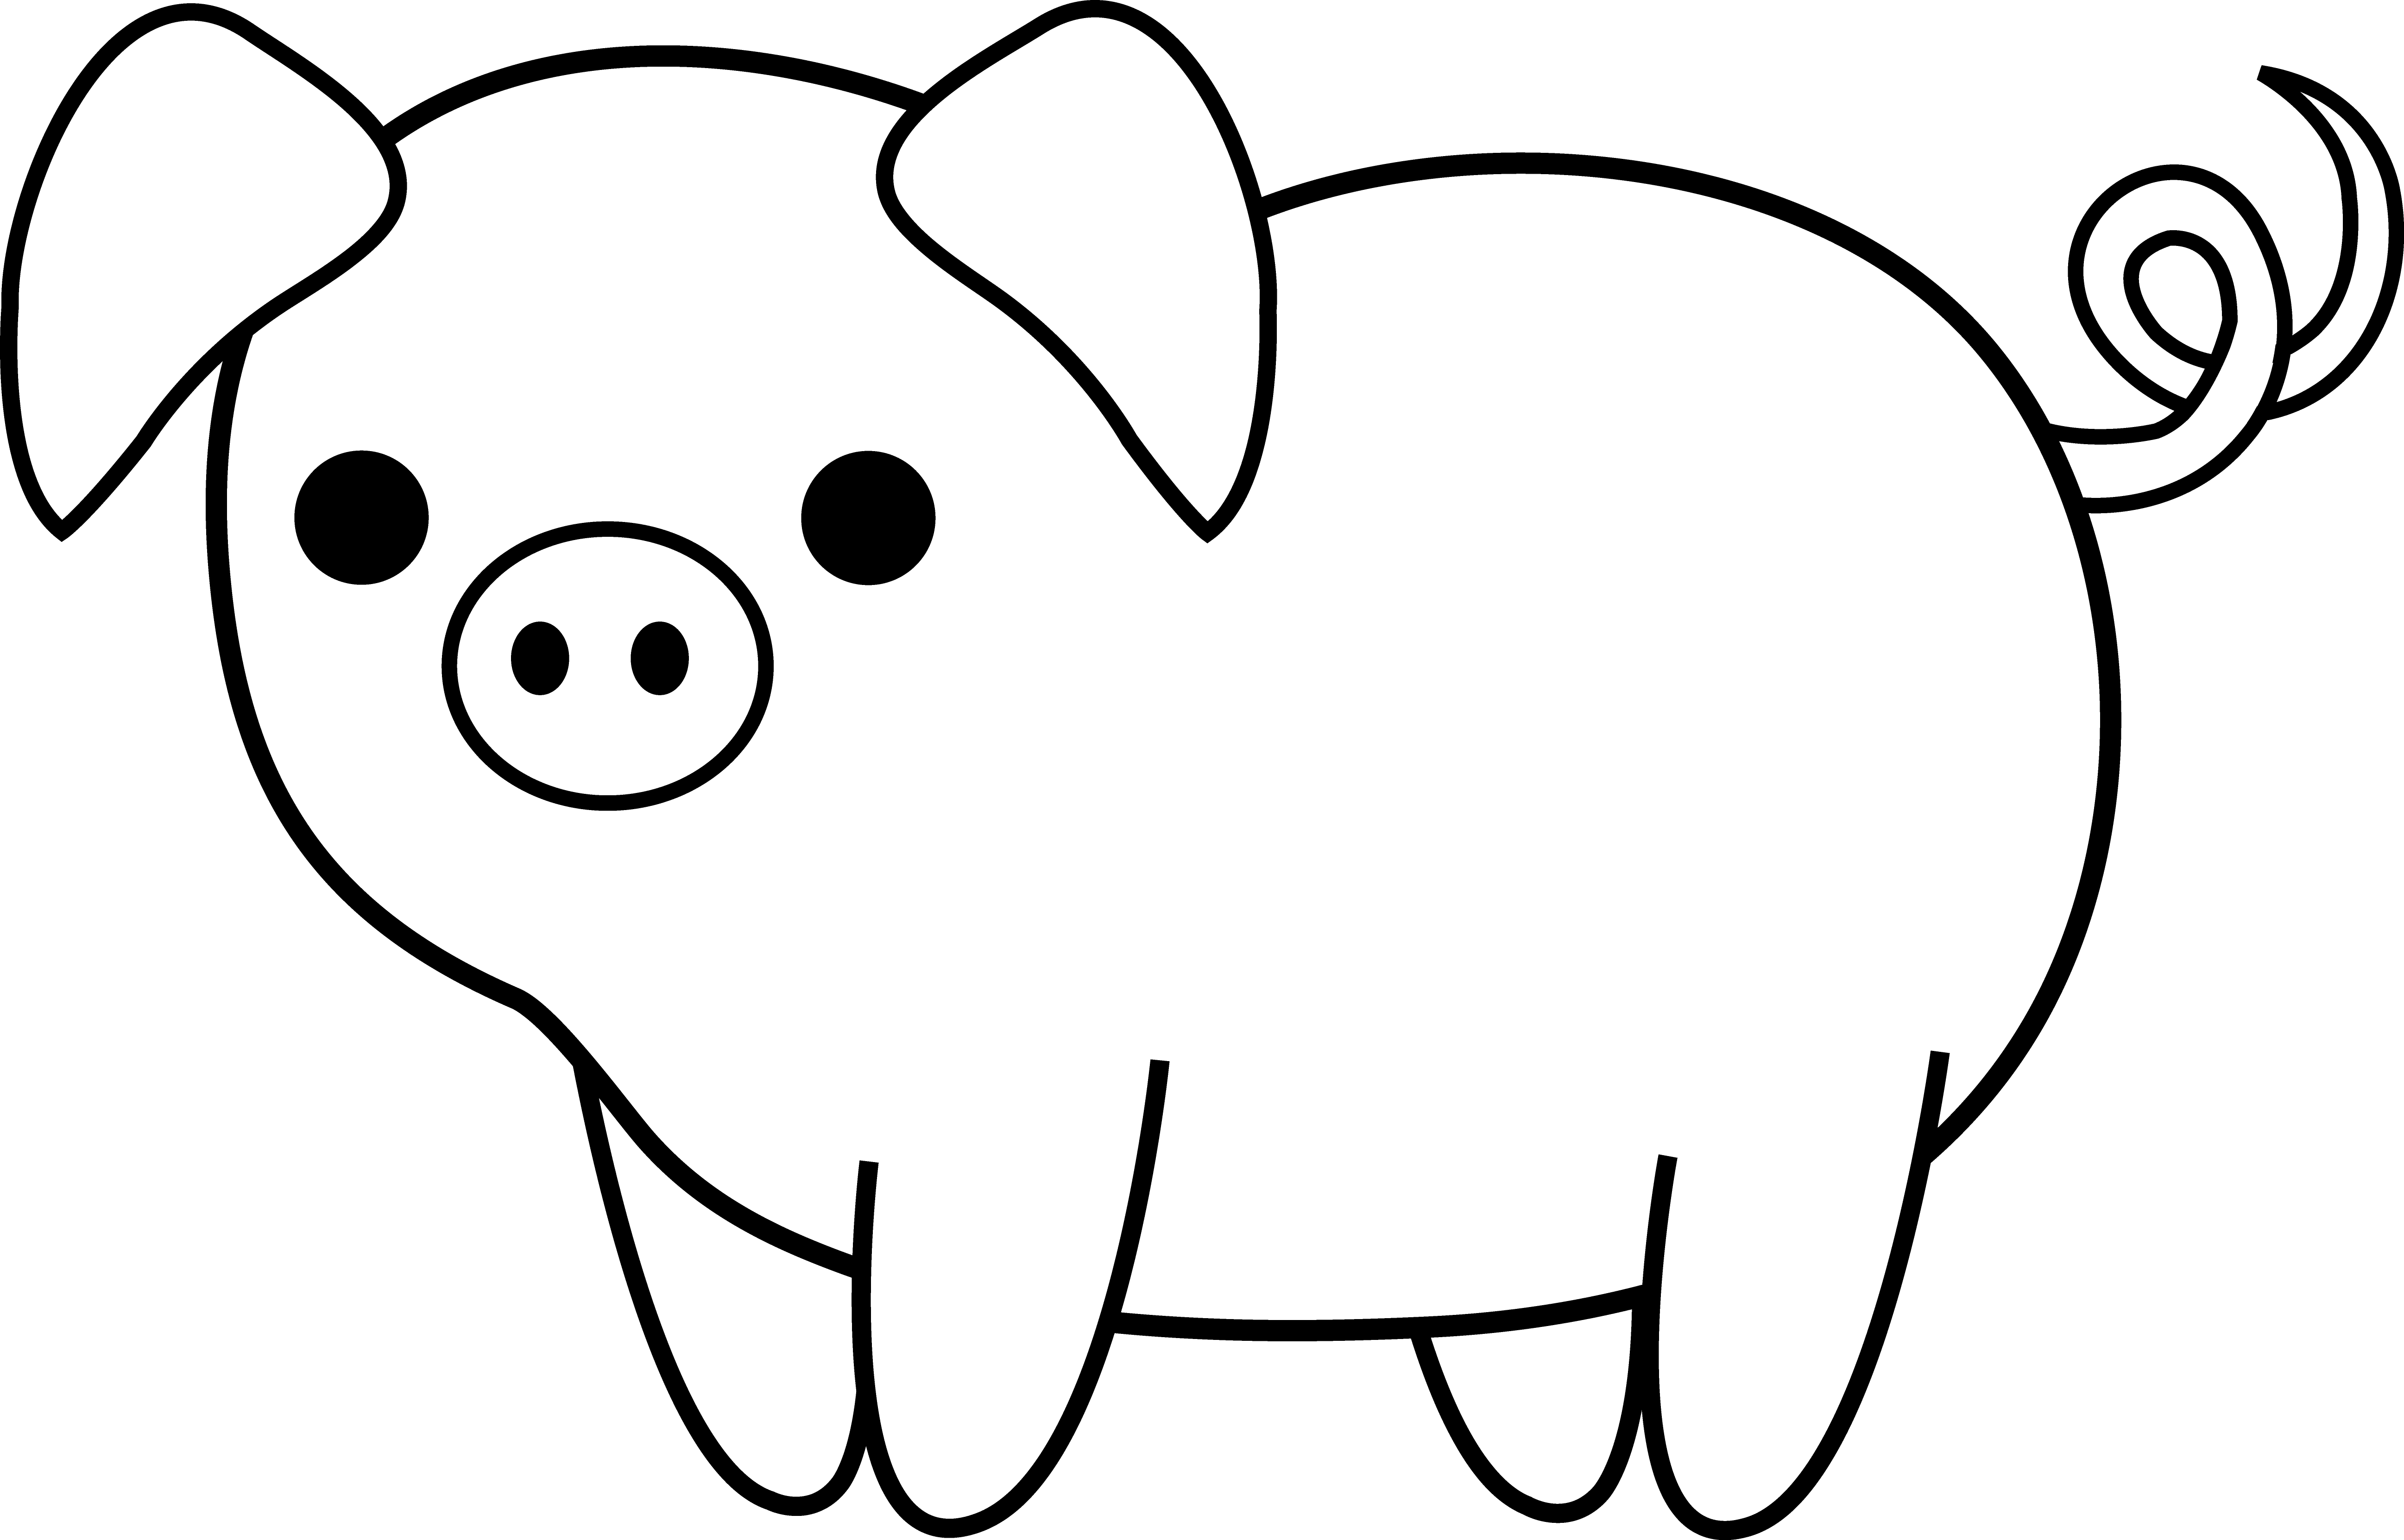 Three little pigs brick house clipart black and white svg royalty free Cute Black and White Pig | Clip Art | Pinterest | Black, Template ... svg royalty free